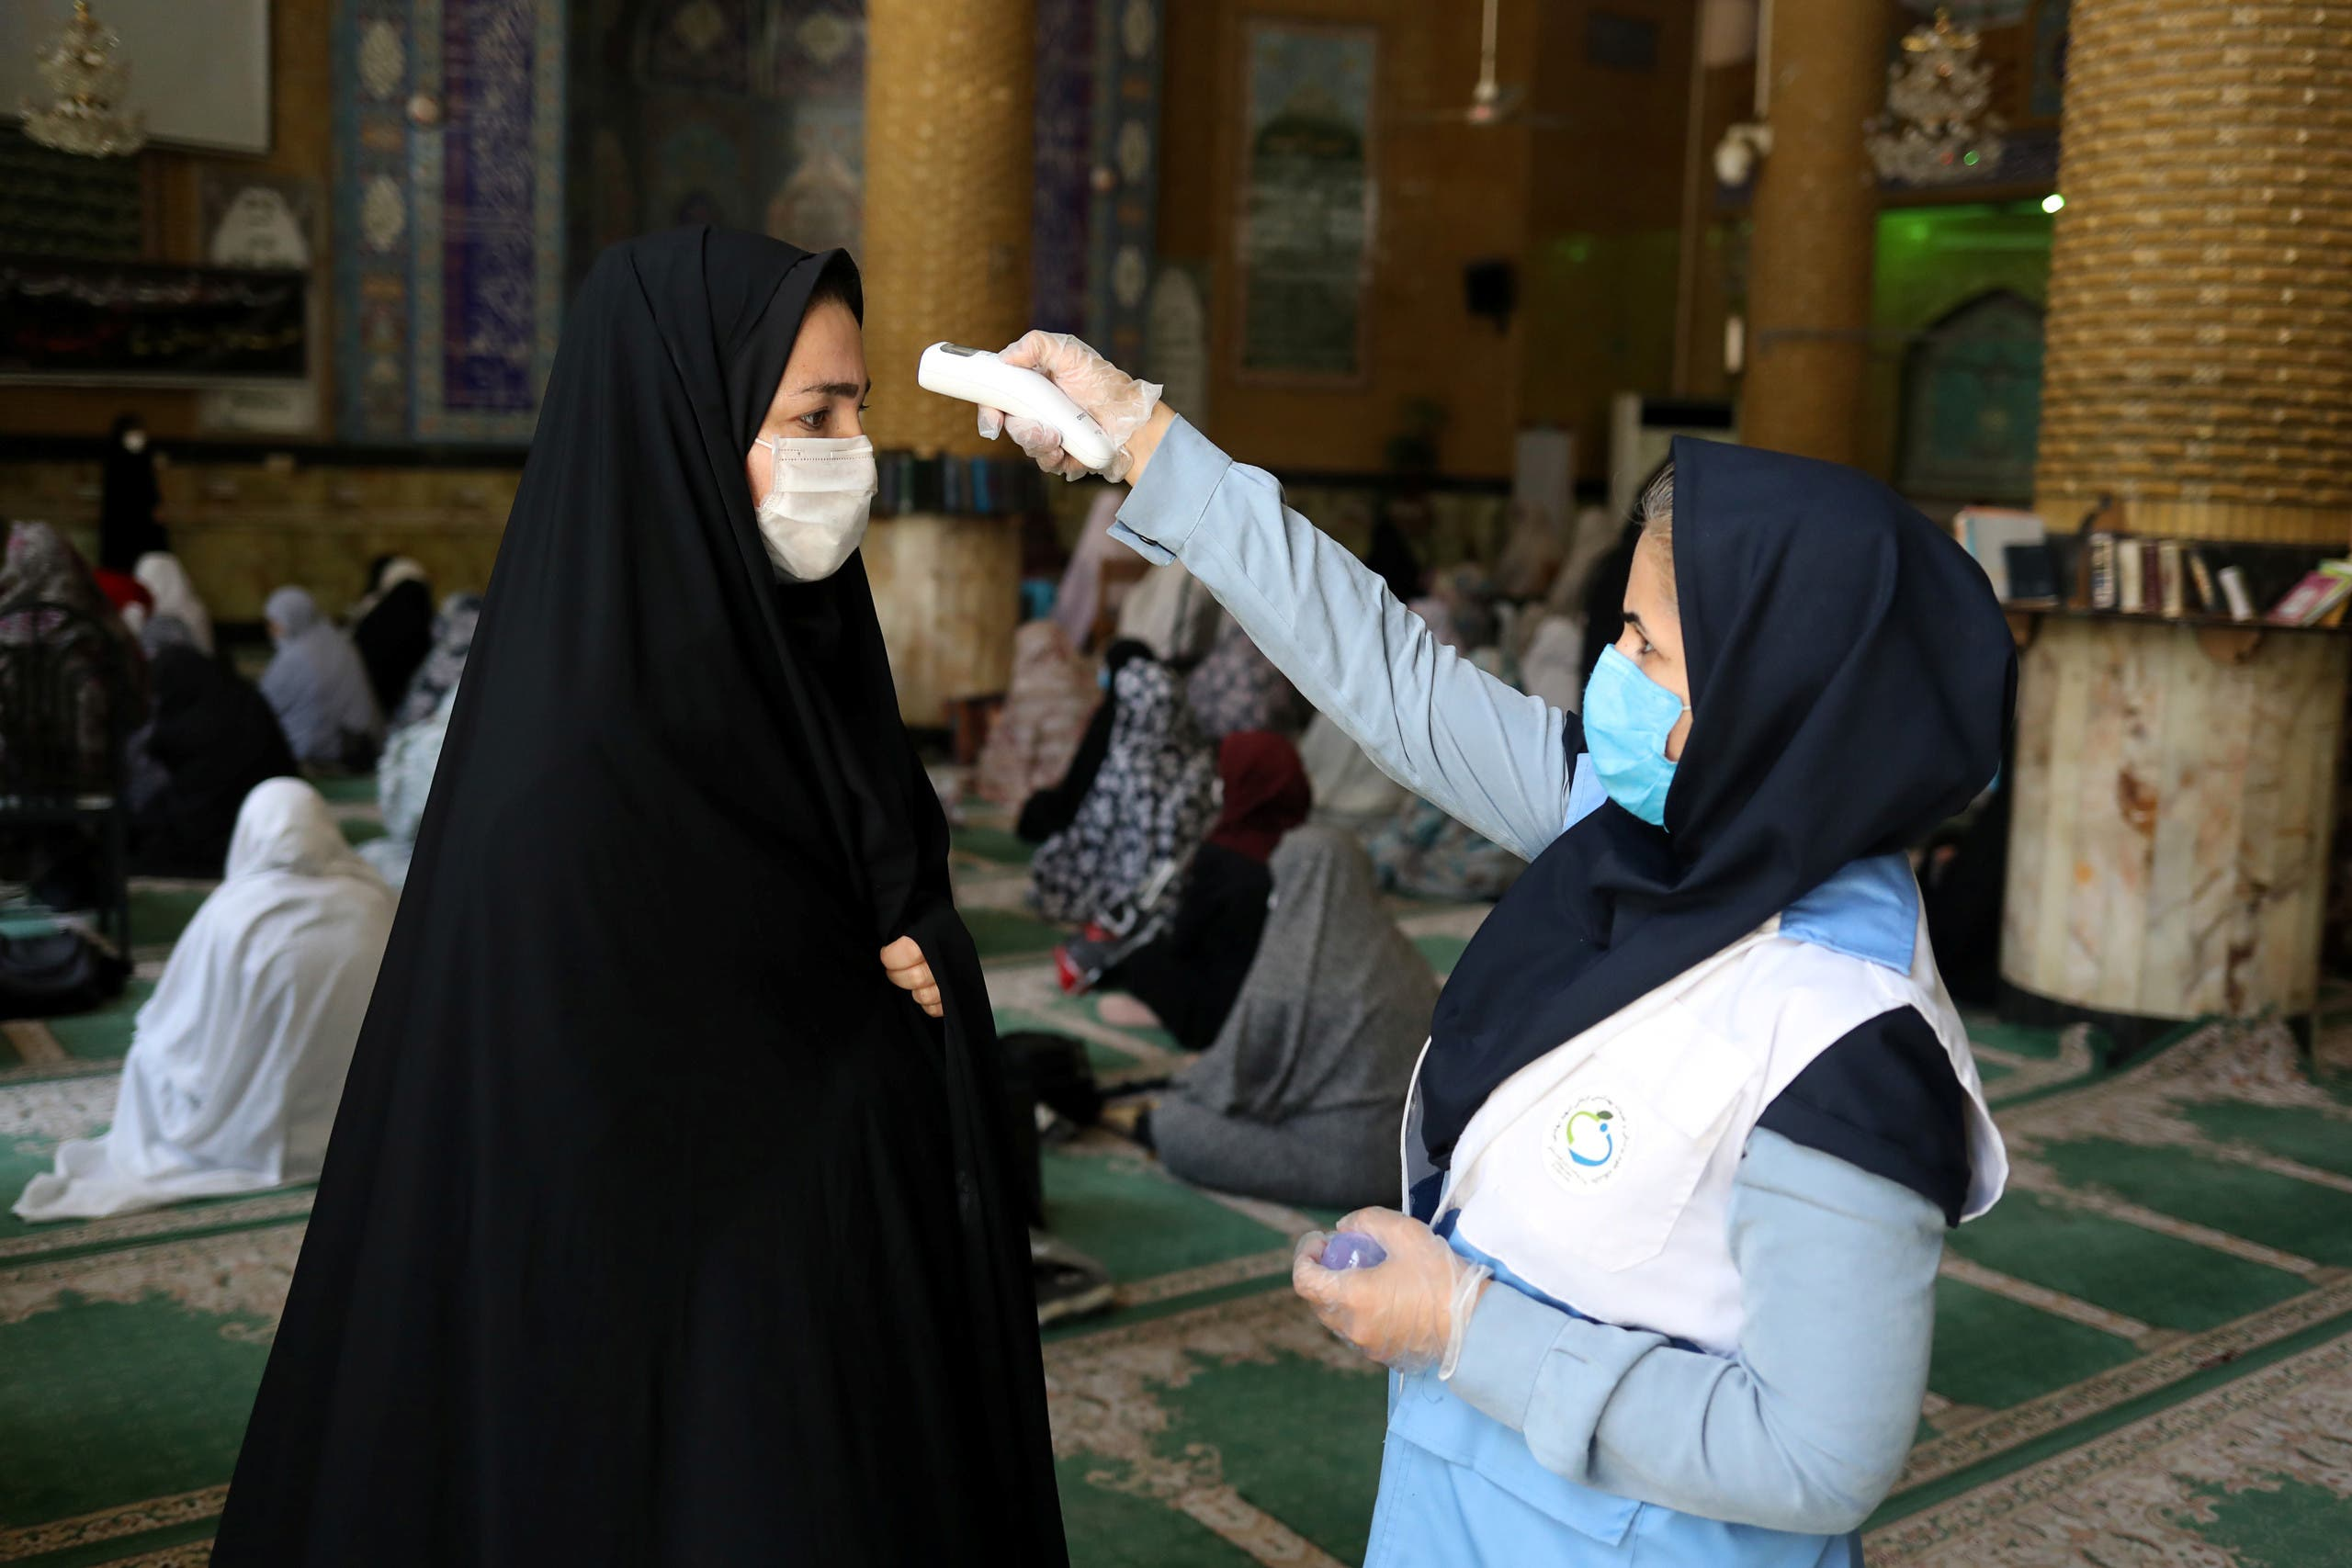 An Iranian woman wearing a protective face mask checks the temperature of a worshipper before attending the Friday prayers in Qarchak Jamee Mosque, following the outbreak of the coronavirus disease (COVID-19), in Tehran province, in Qarchak, Iran, June 12, 2020. (Reuters)